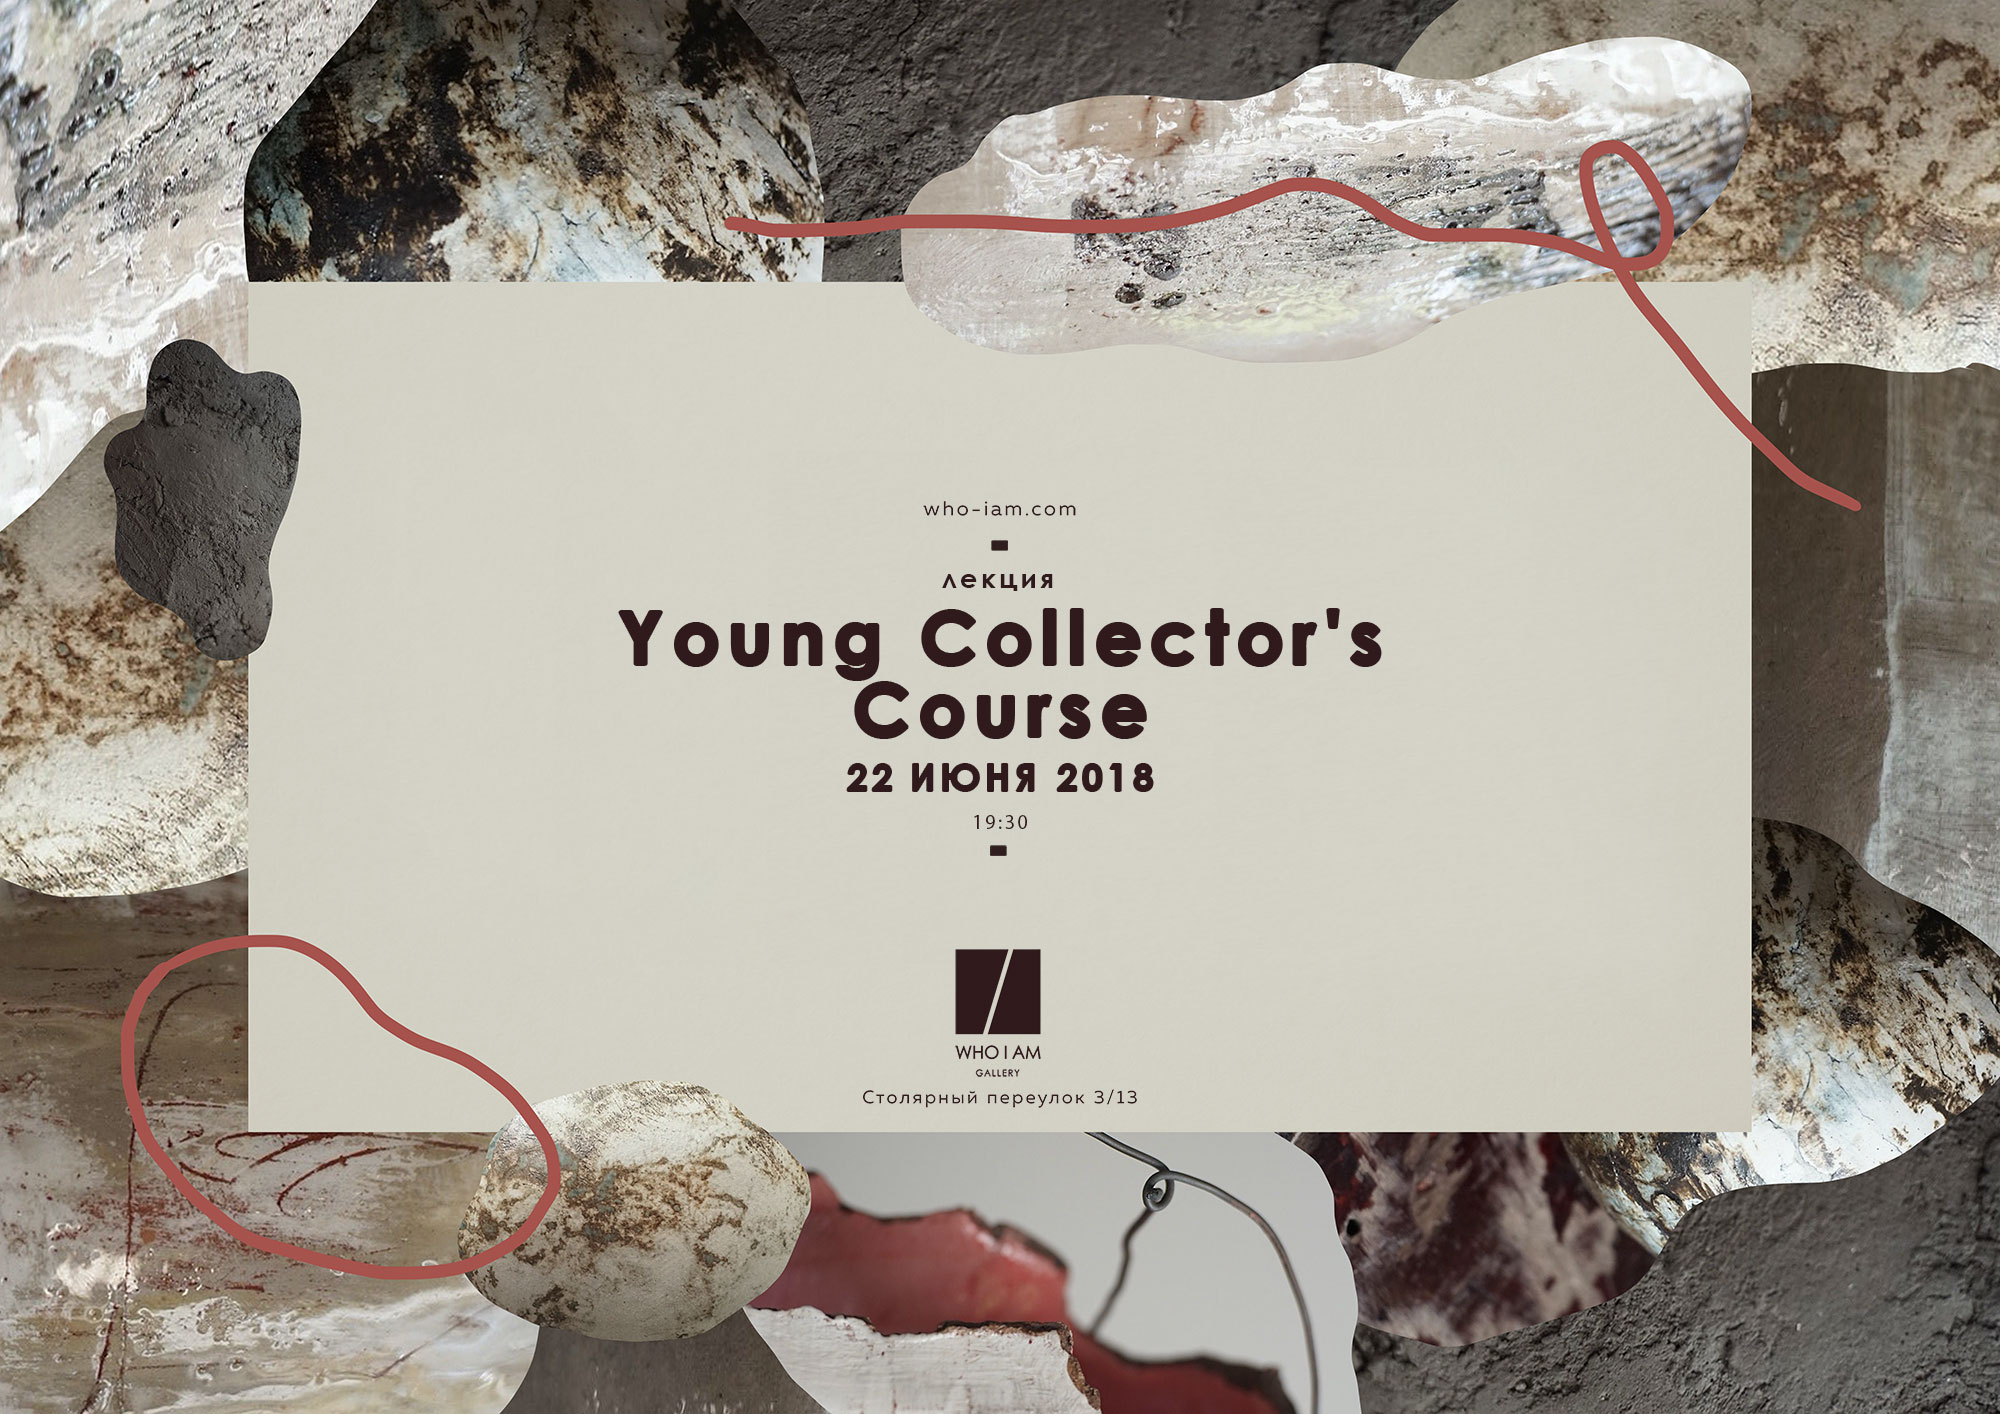 Young Collector's Course